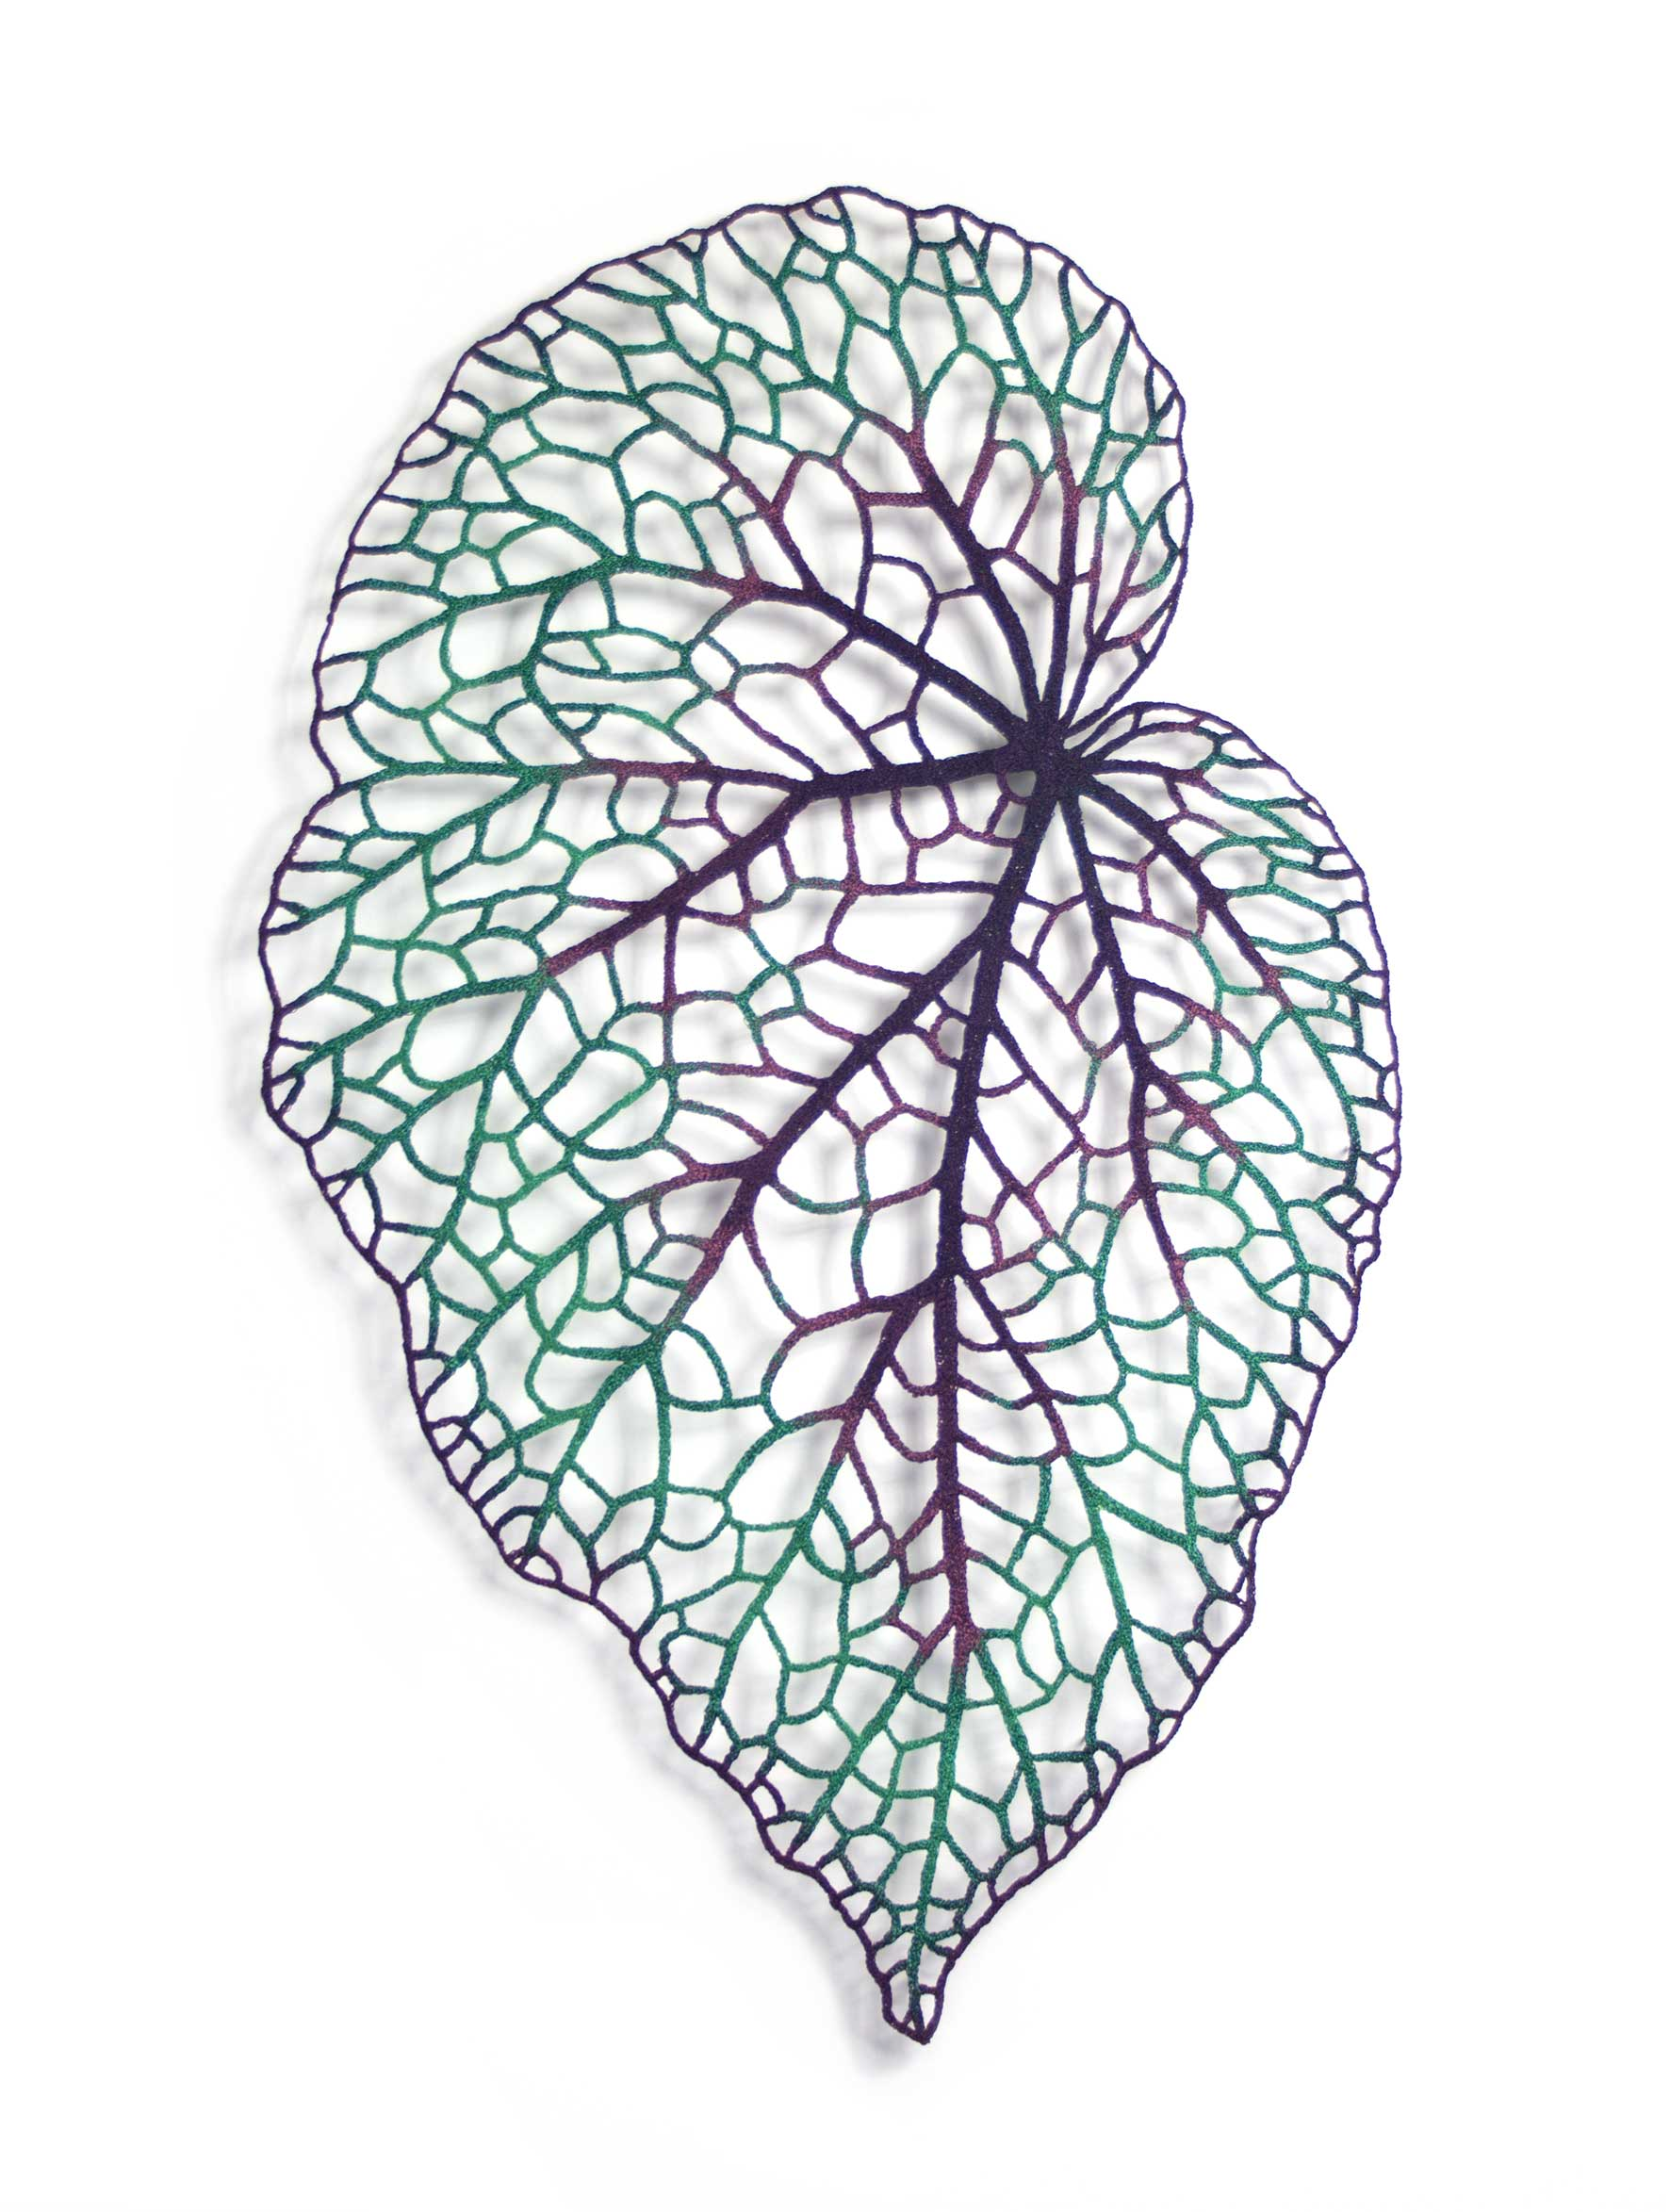 meredith woolnough feuille